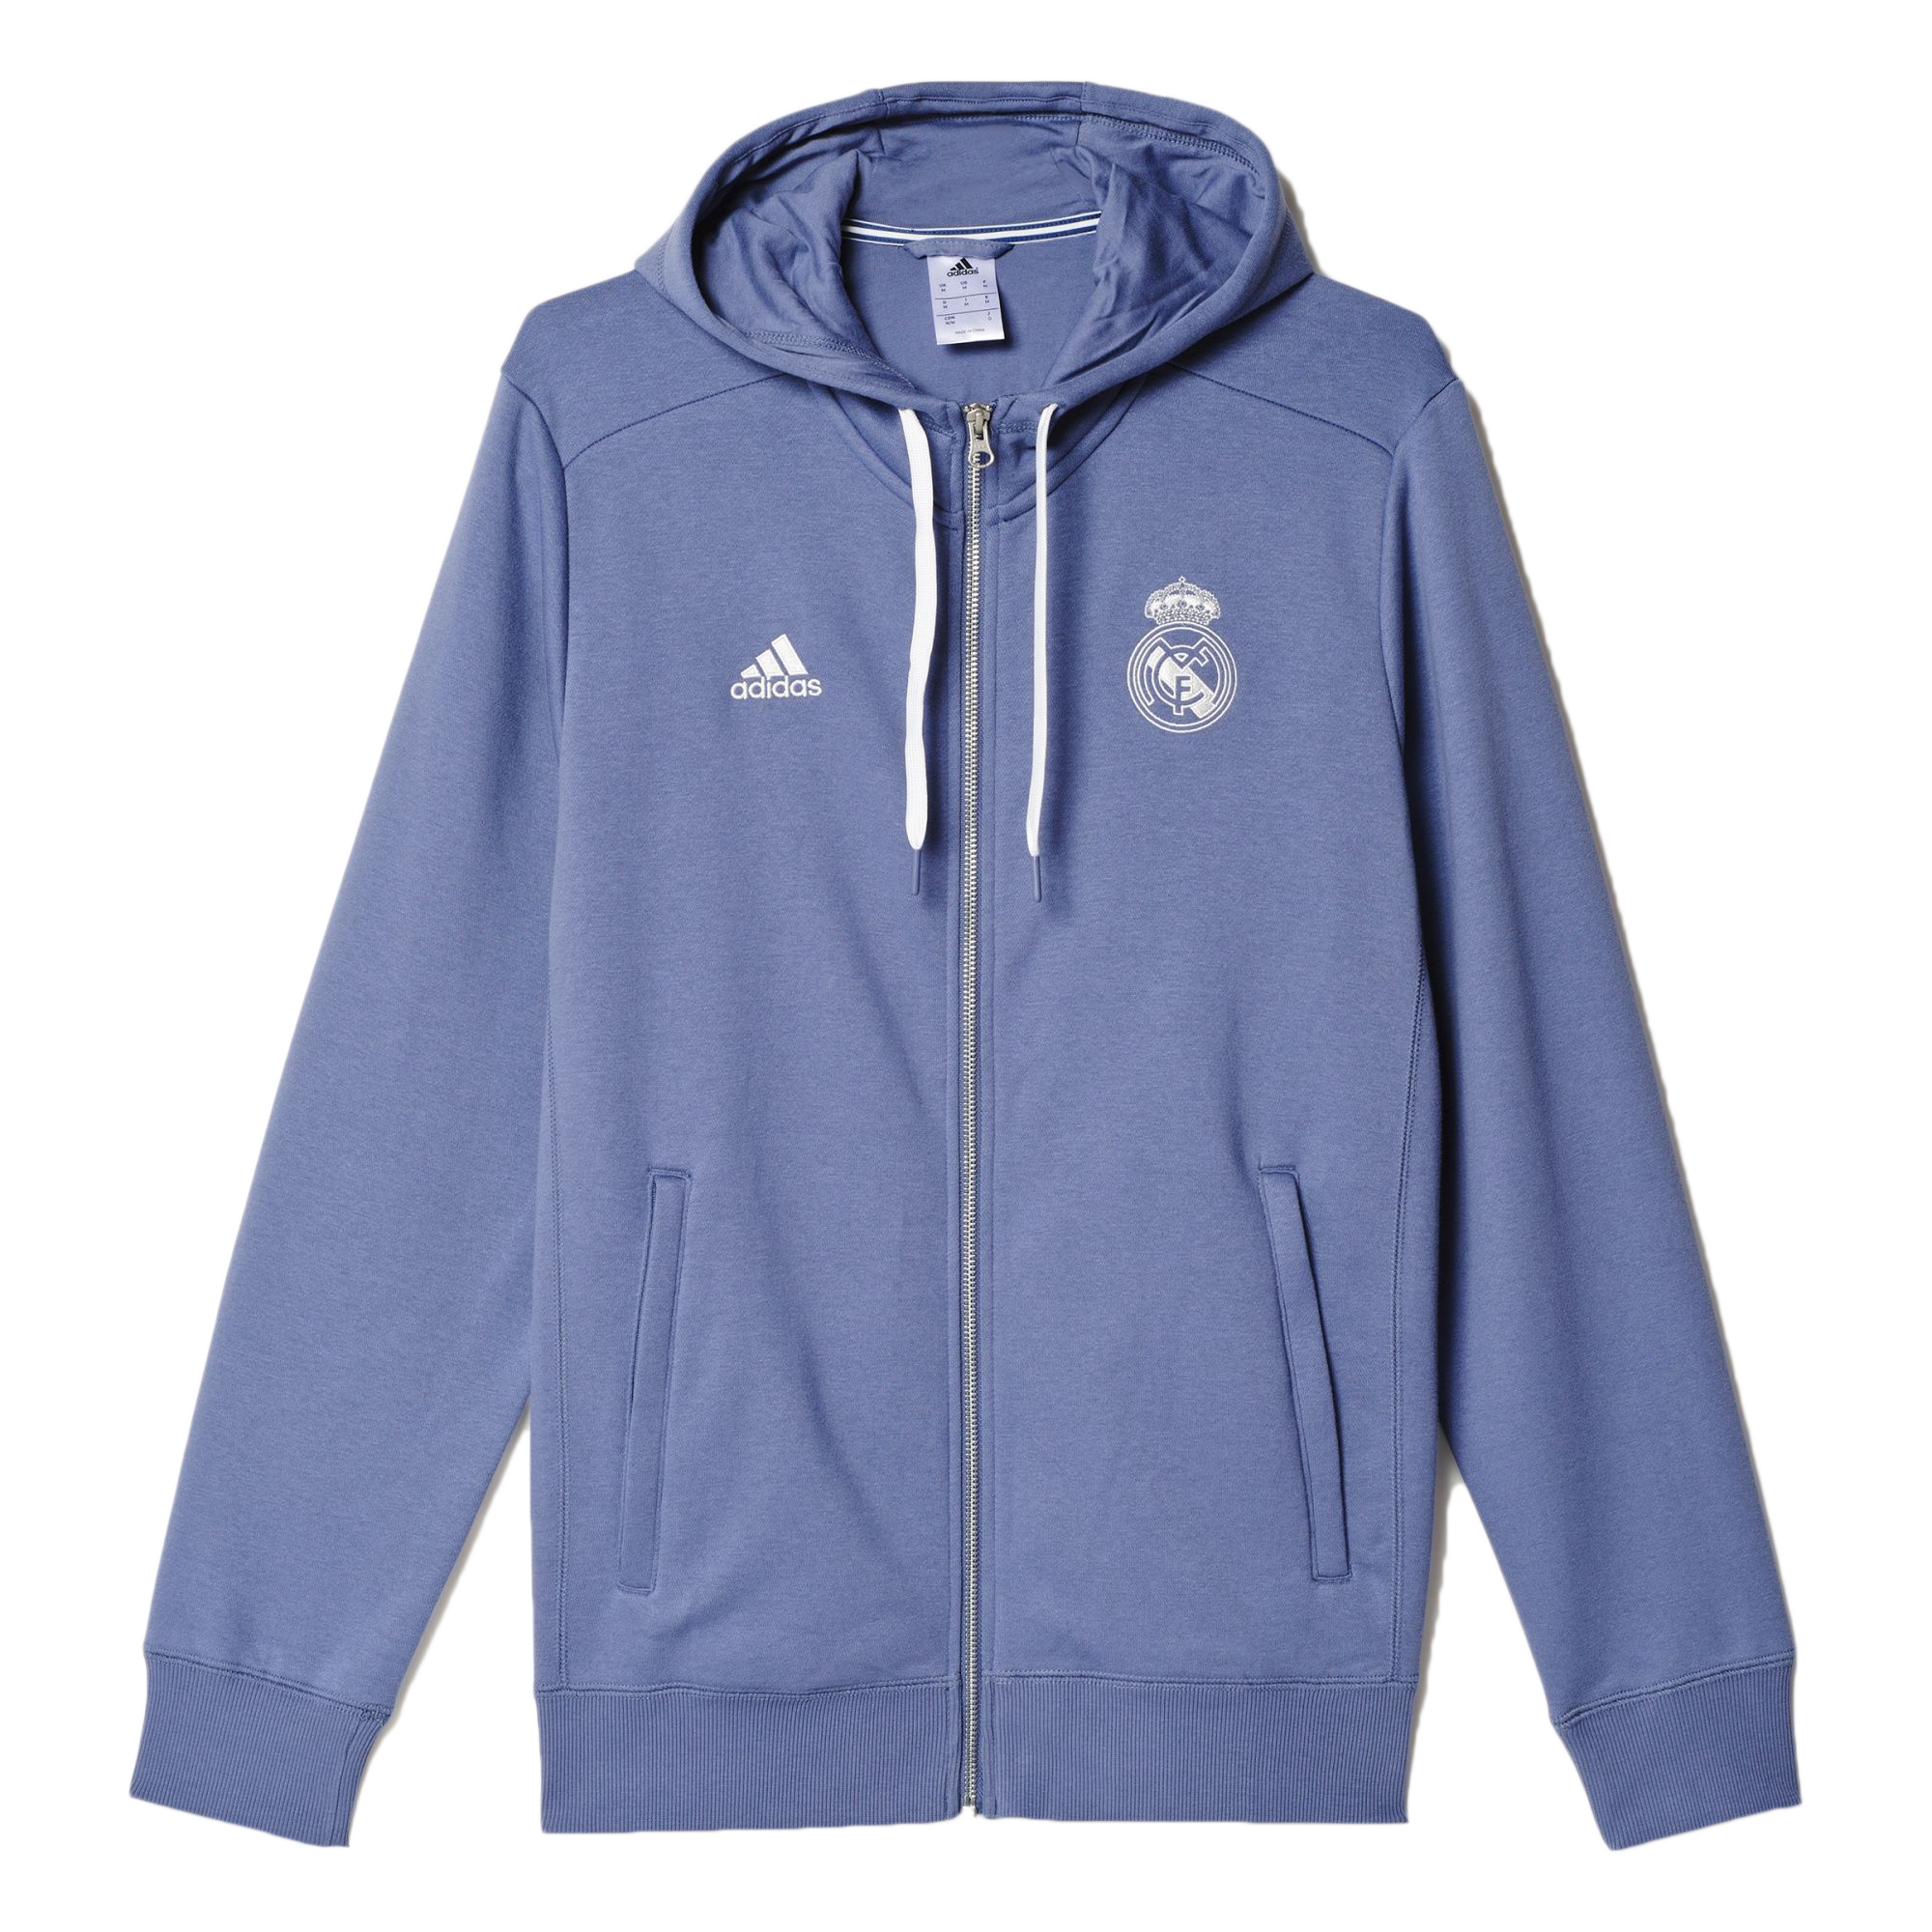 4e0df46b9c1 A full-zip football hoodie for loyal fans of Real Madrid. Support Real  Madrid in this men s full-zip football hoodie. Club colors and a club crest  show your ...